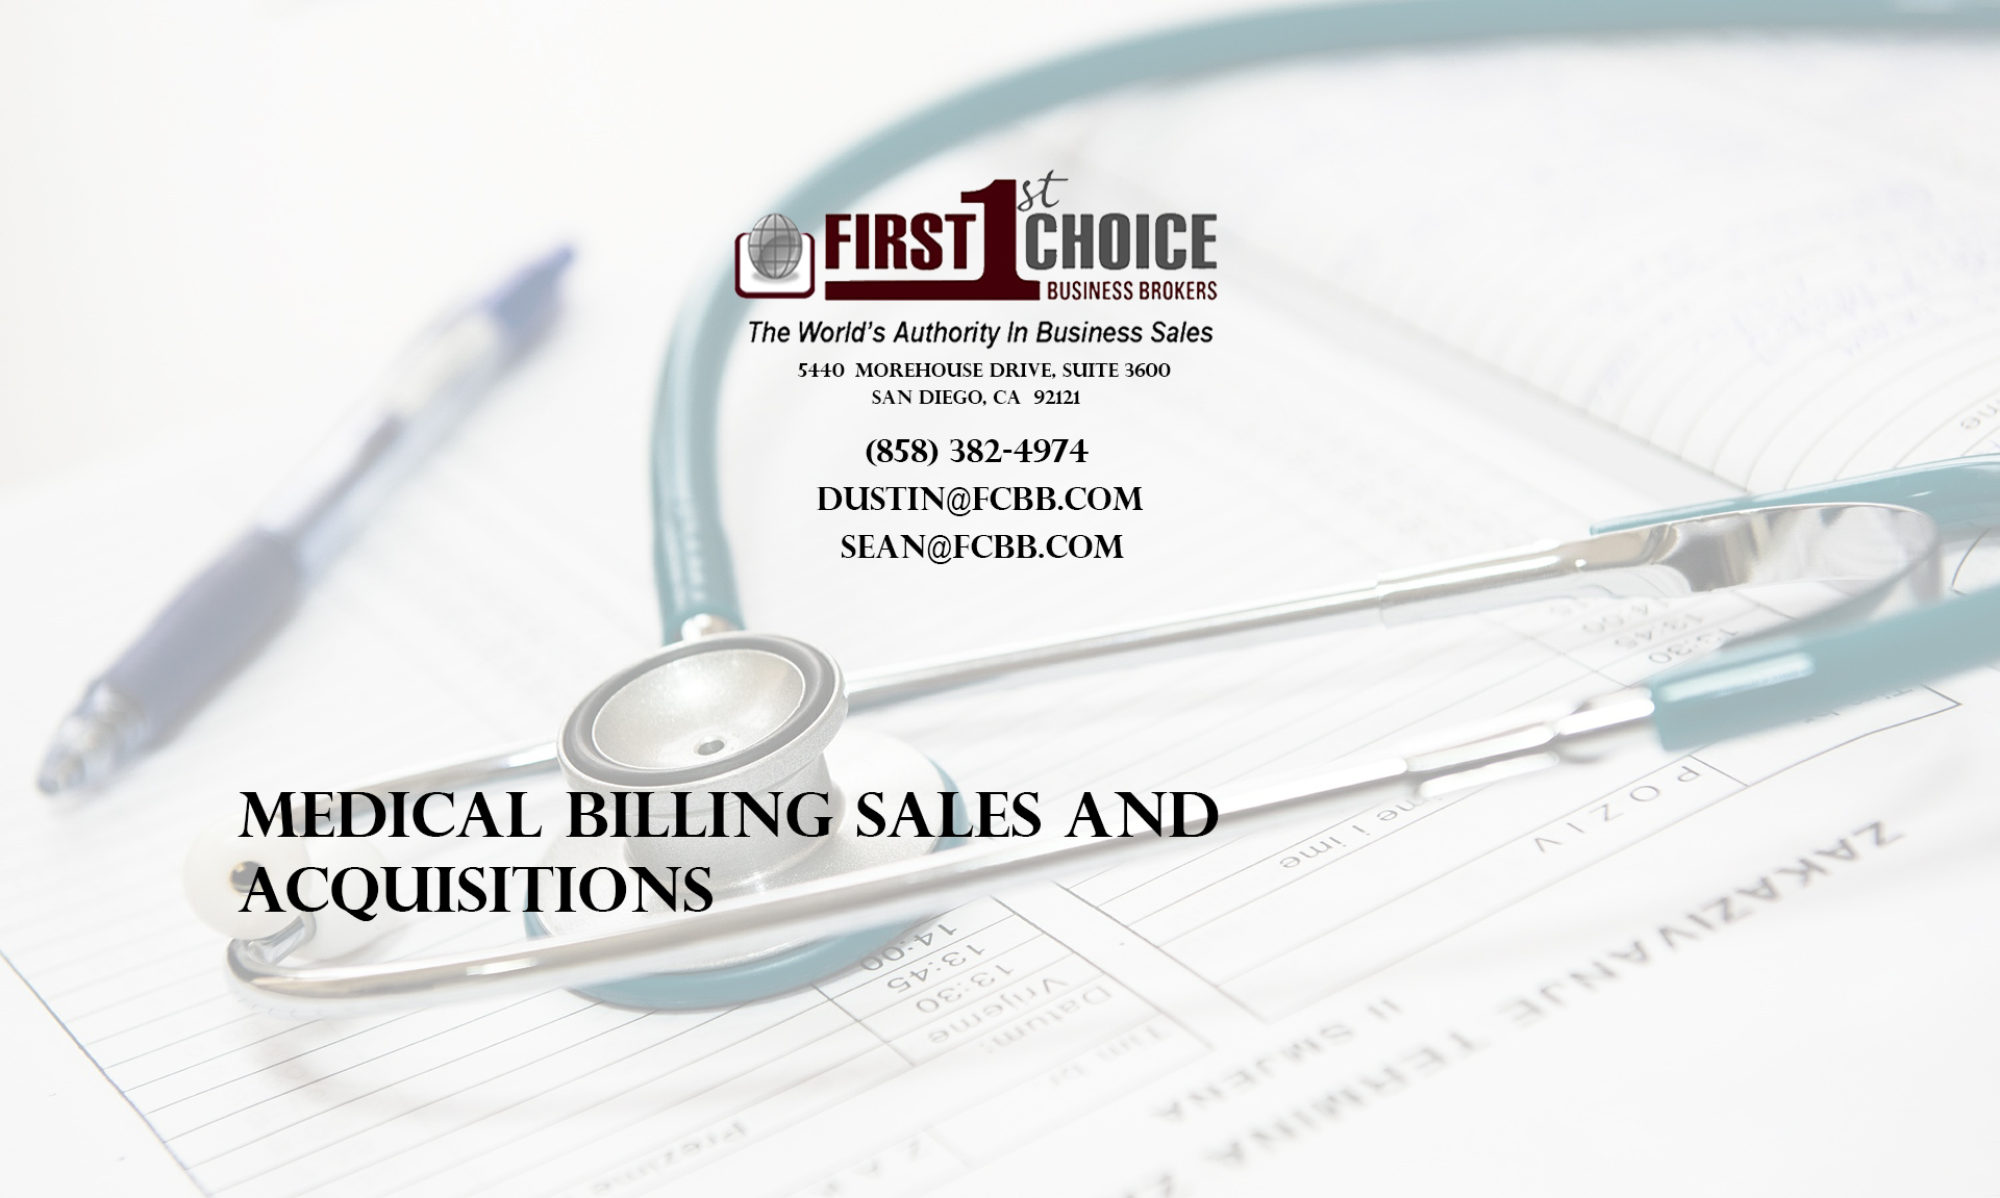 Medical Billing Sales And Acquisitions